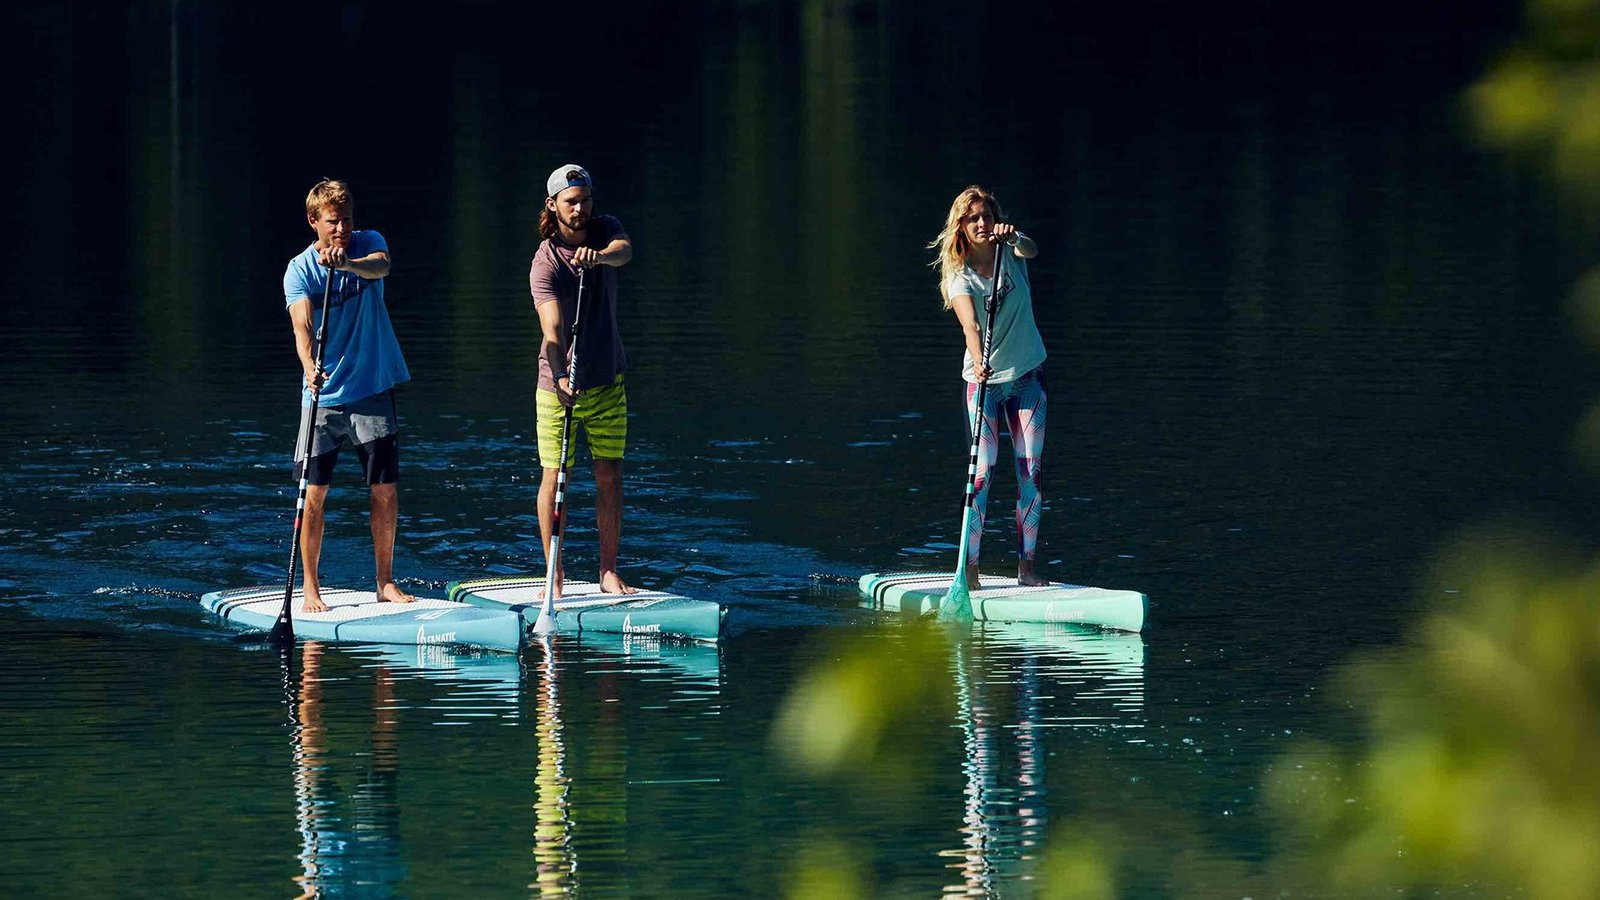 People paddling stand up paddle board on calm water